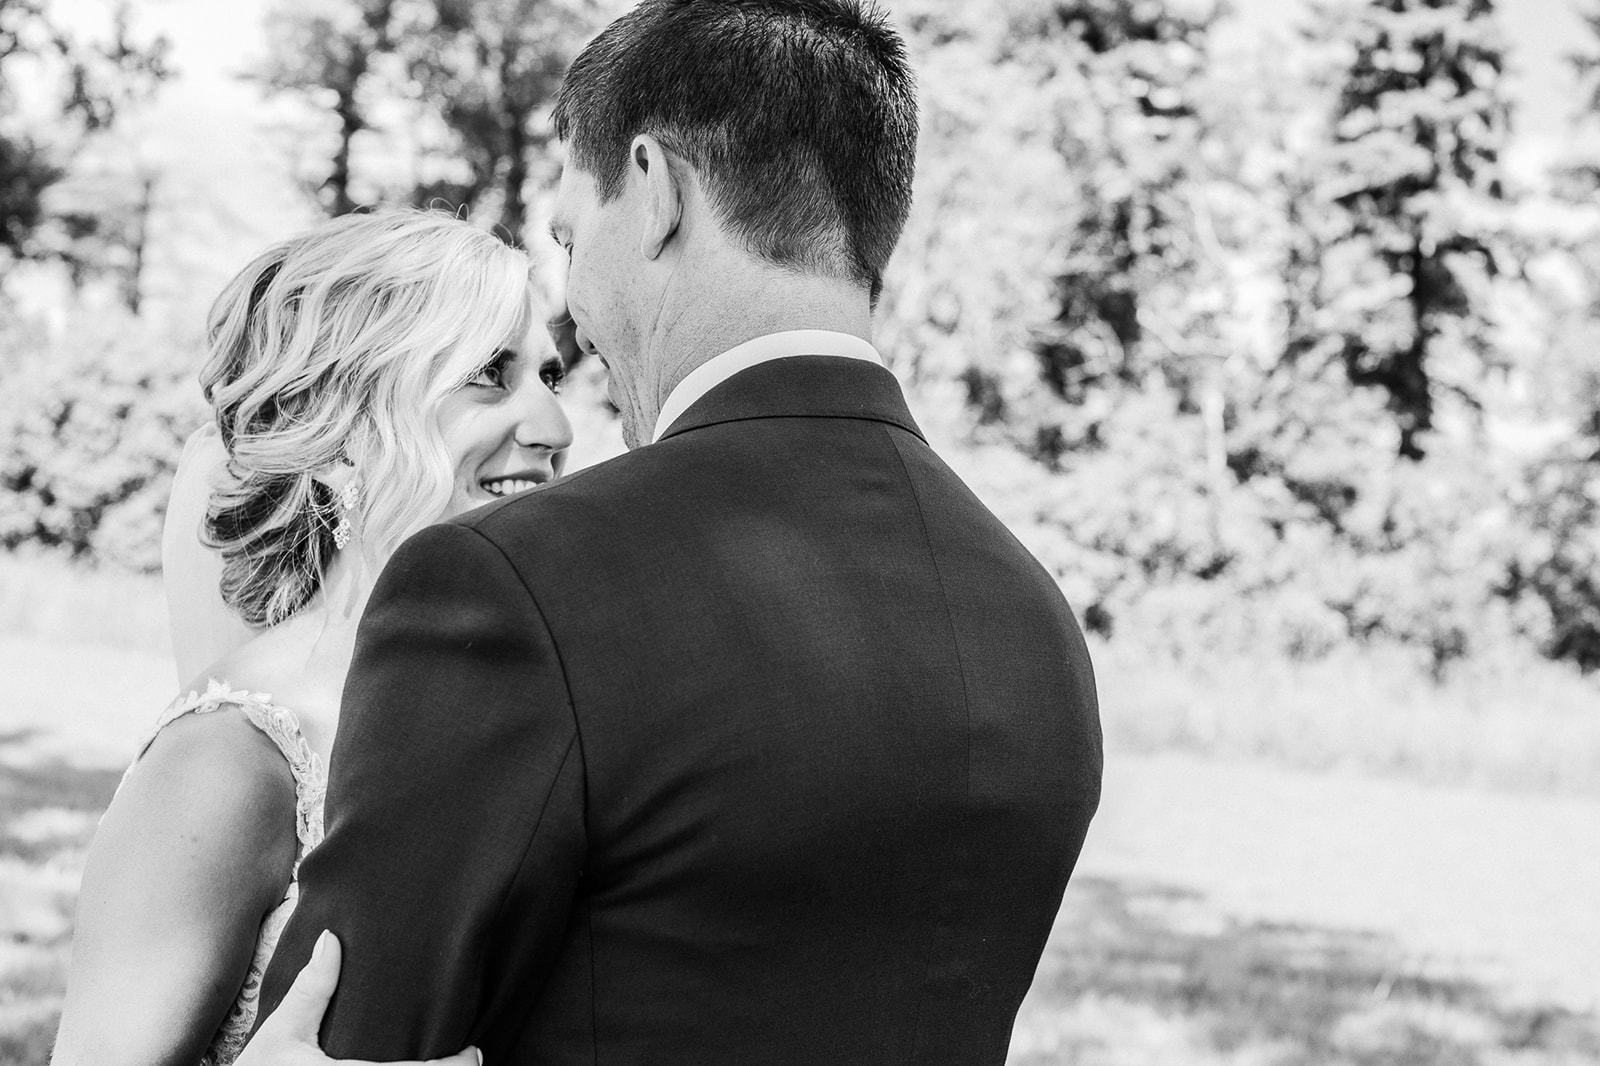 July_12,_2019-Readel_Messer_Wedding825Readel_wedding_websize.jpg